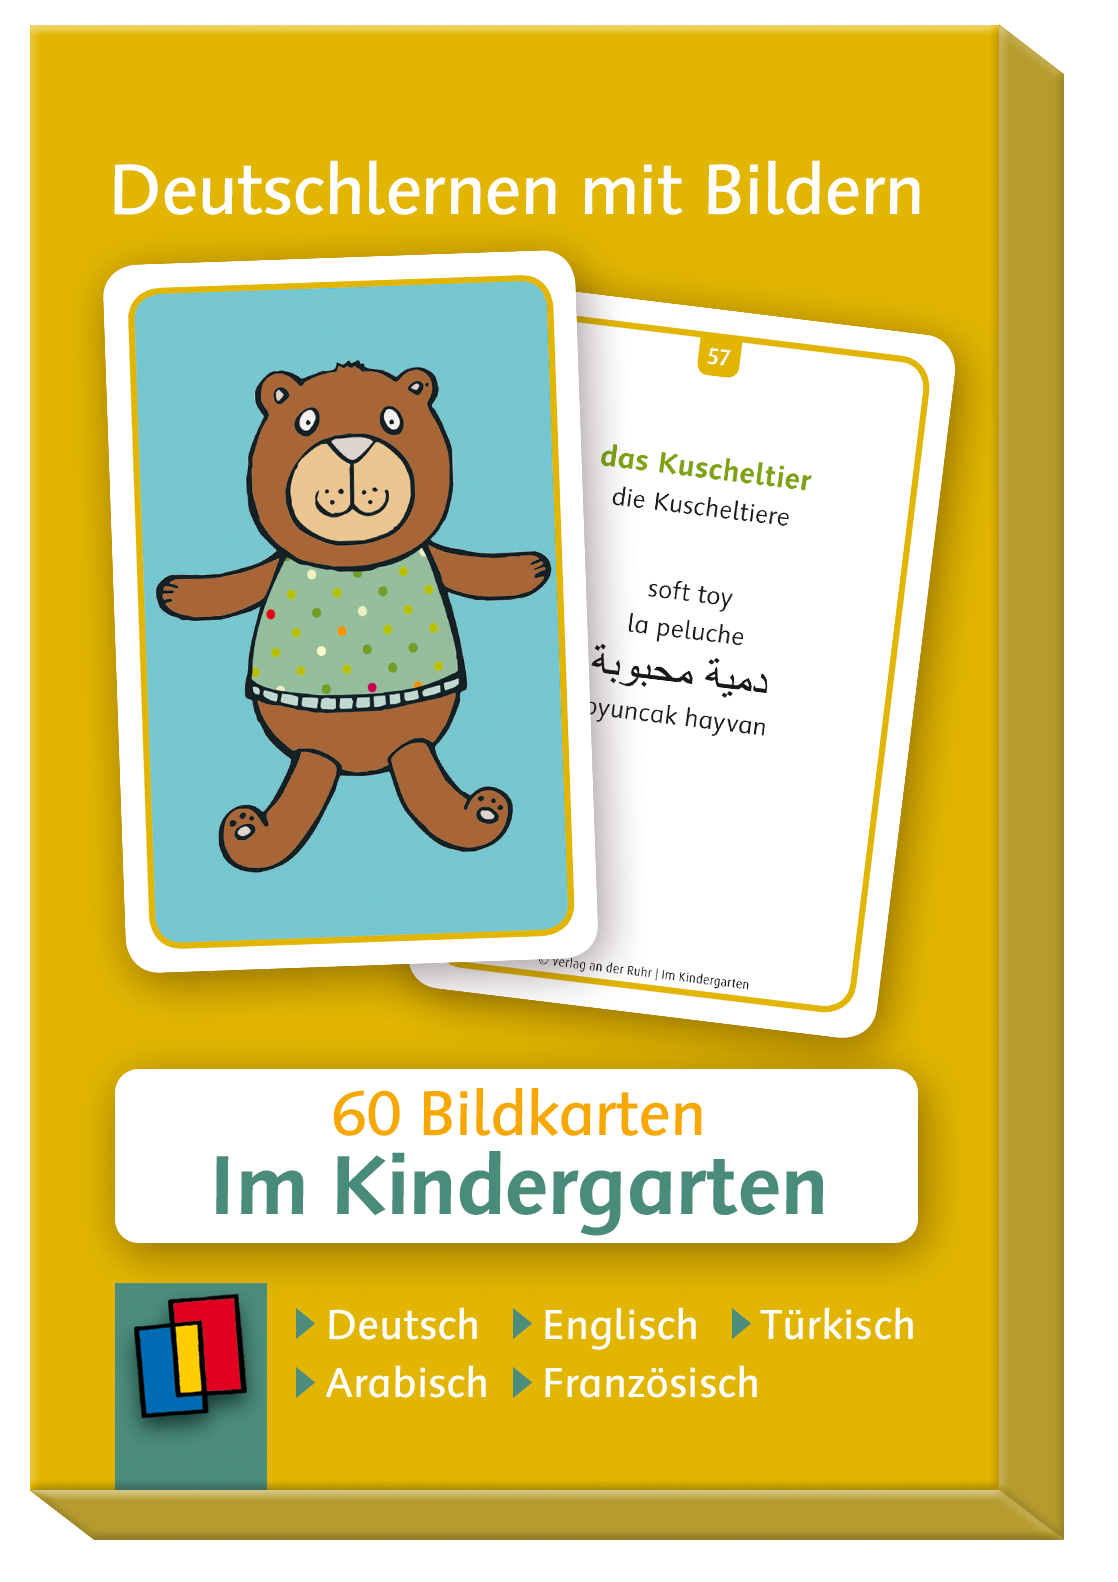 deutschlernen mit bildern im kindergarten. Black Bedroom Furniture Sets. Home Design Ideas